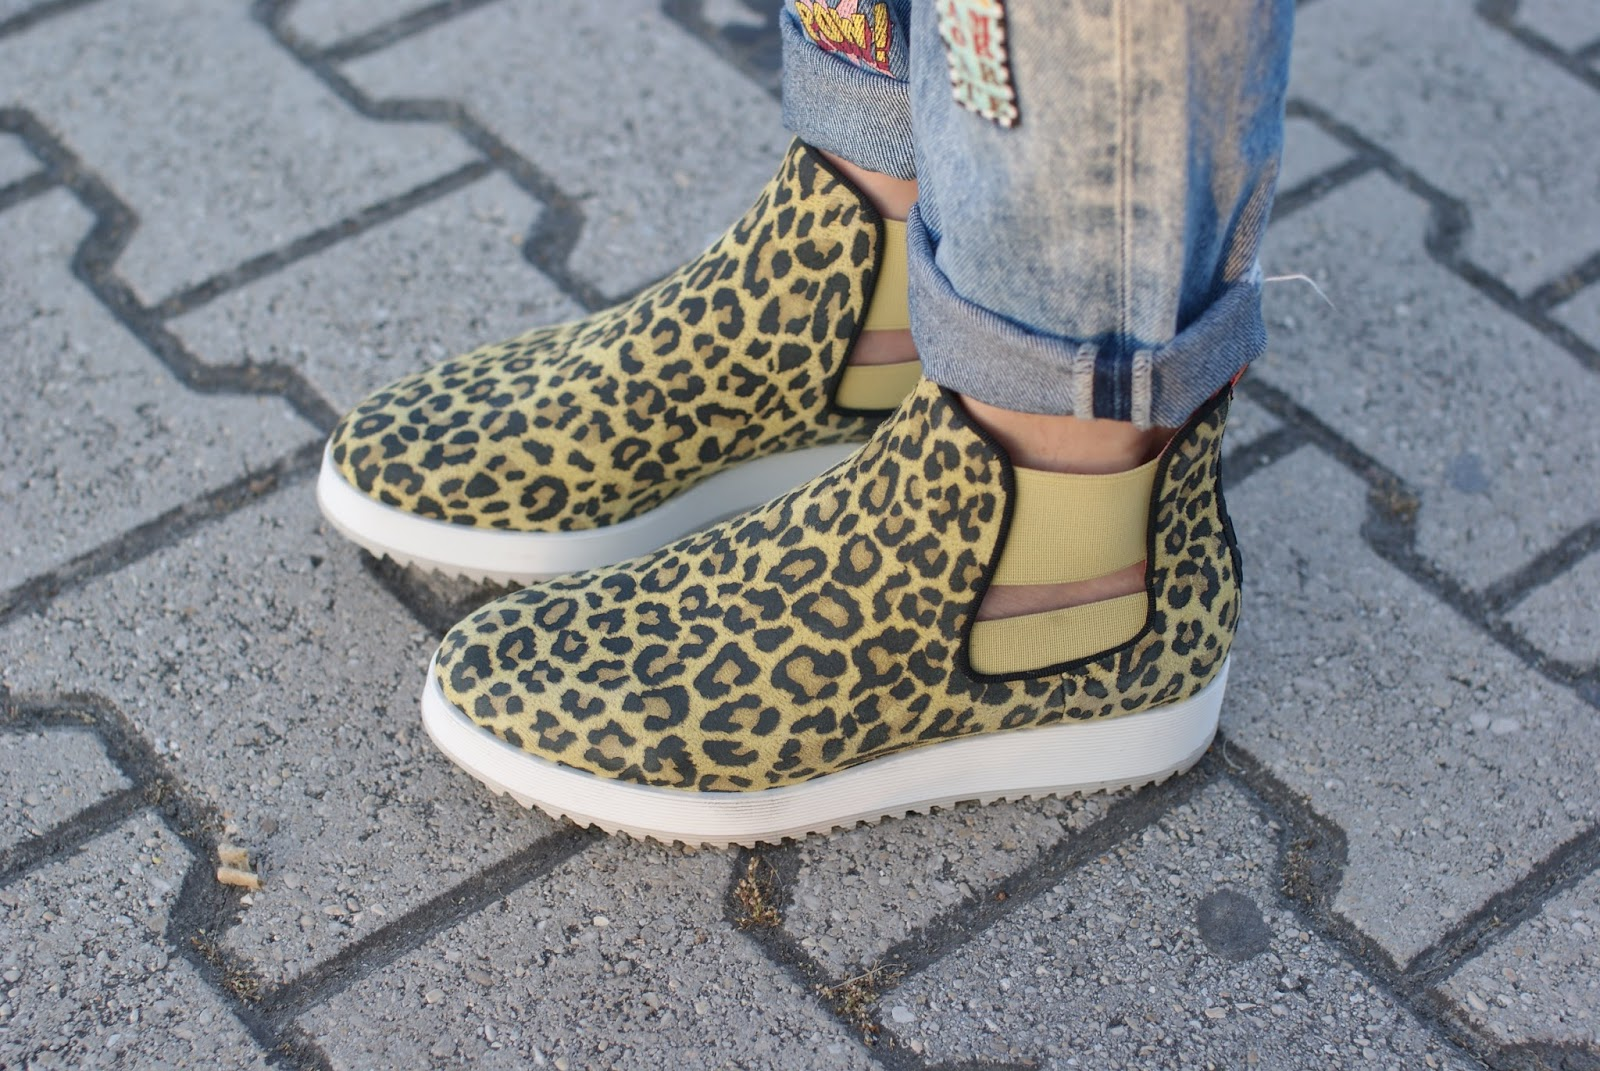 181 shoes, leopard ankle boots, uno8uno shoes, Fashion and Cookies